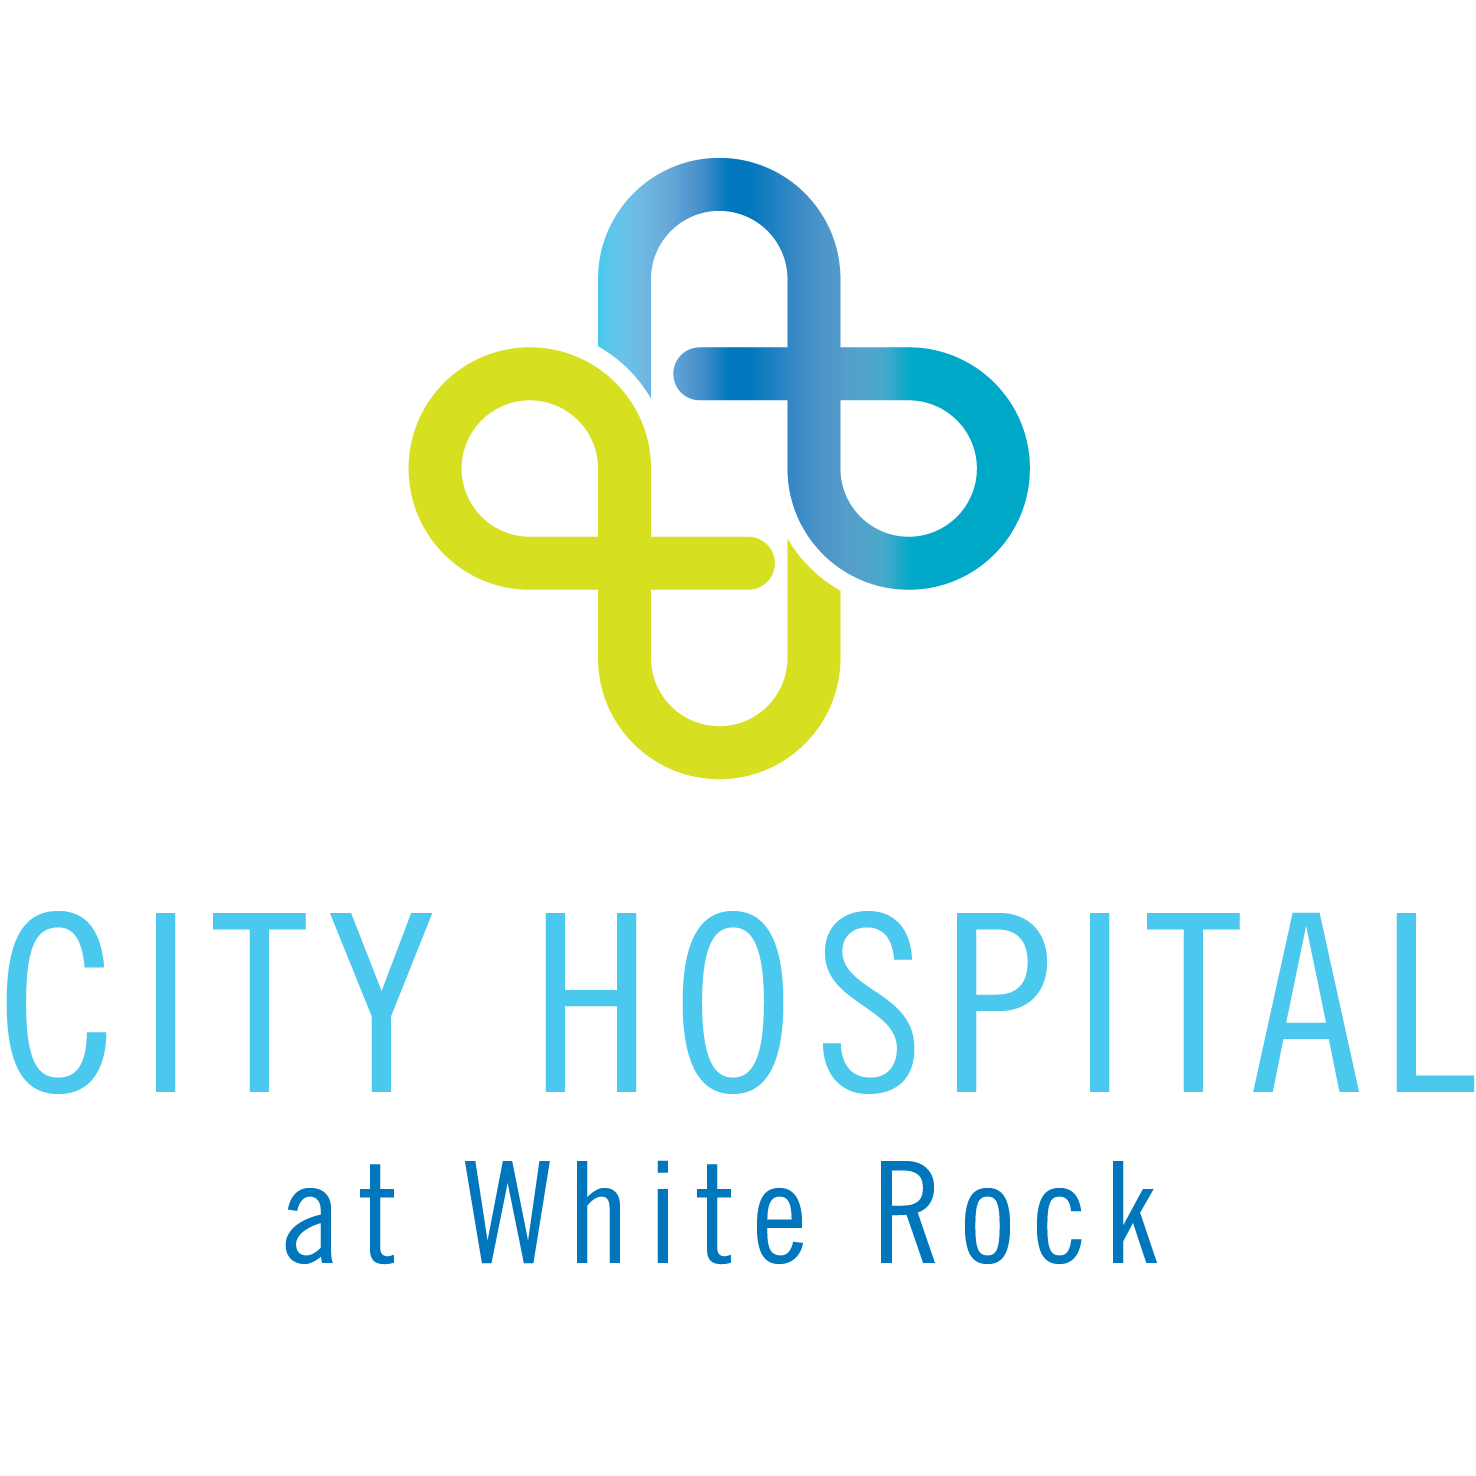 City Hospital at White Rock